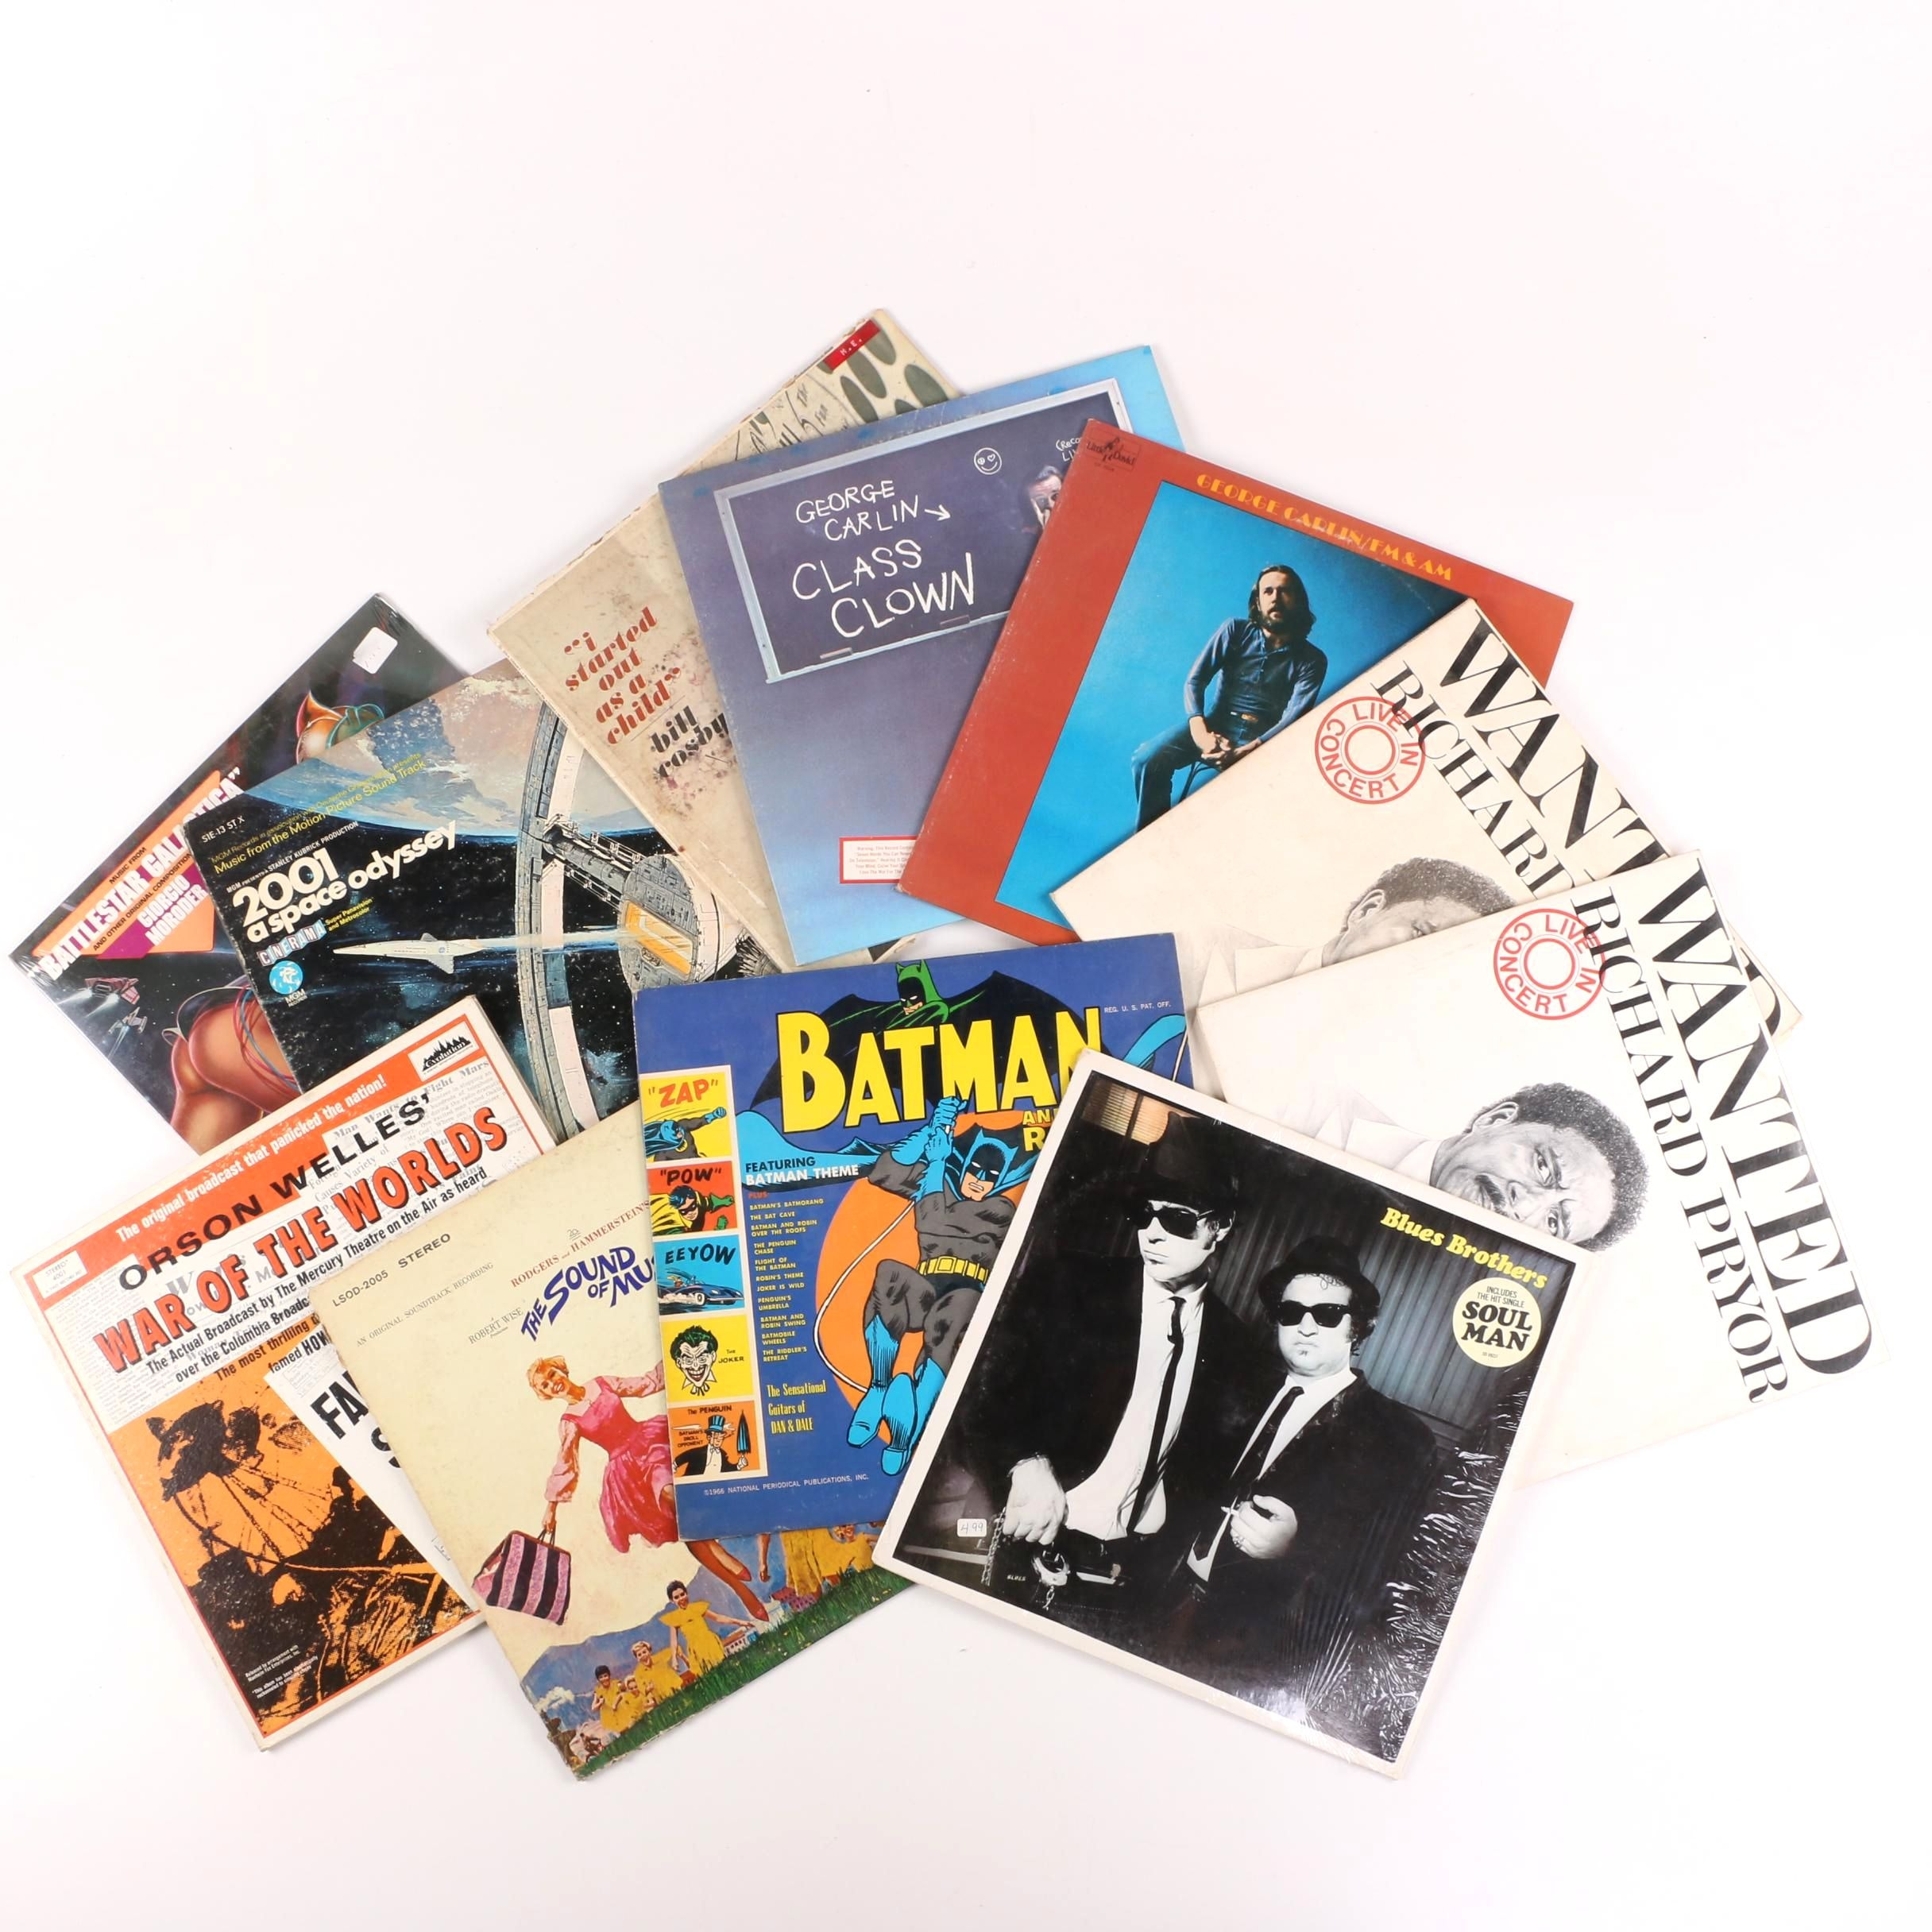 Vintage Comedy, Soundtrack and Other LPs